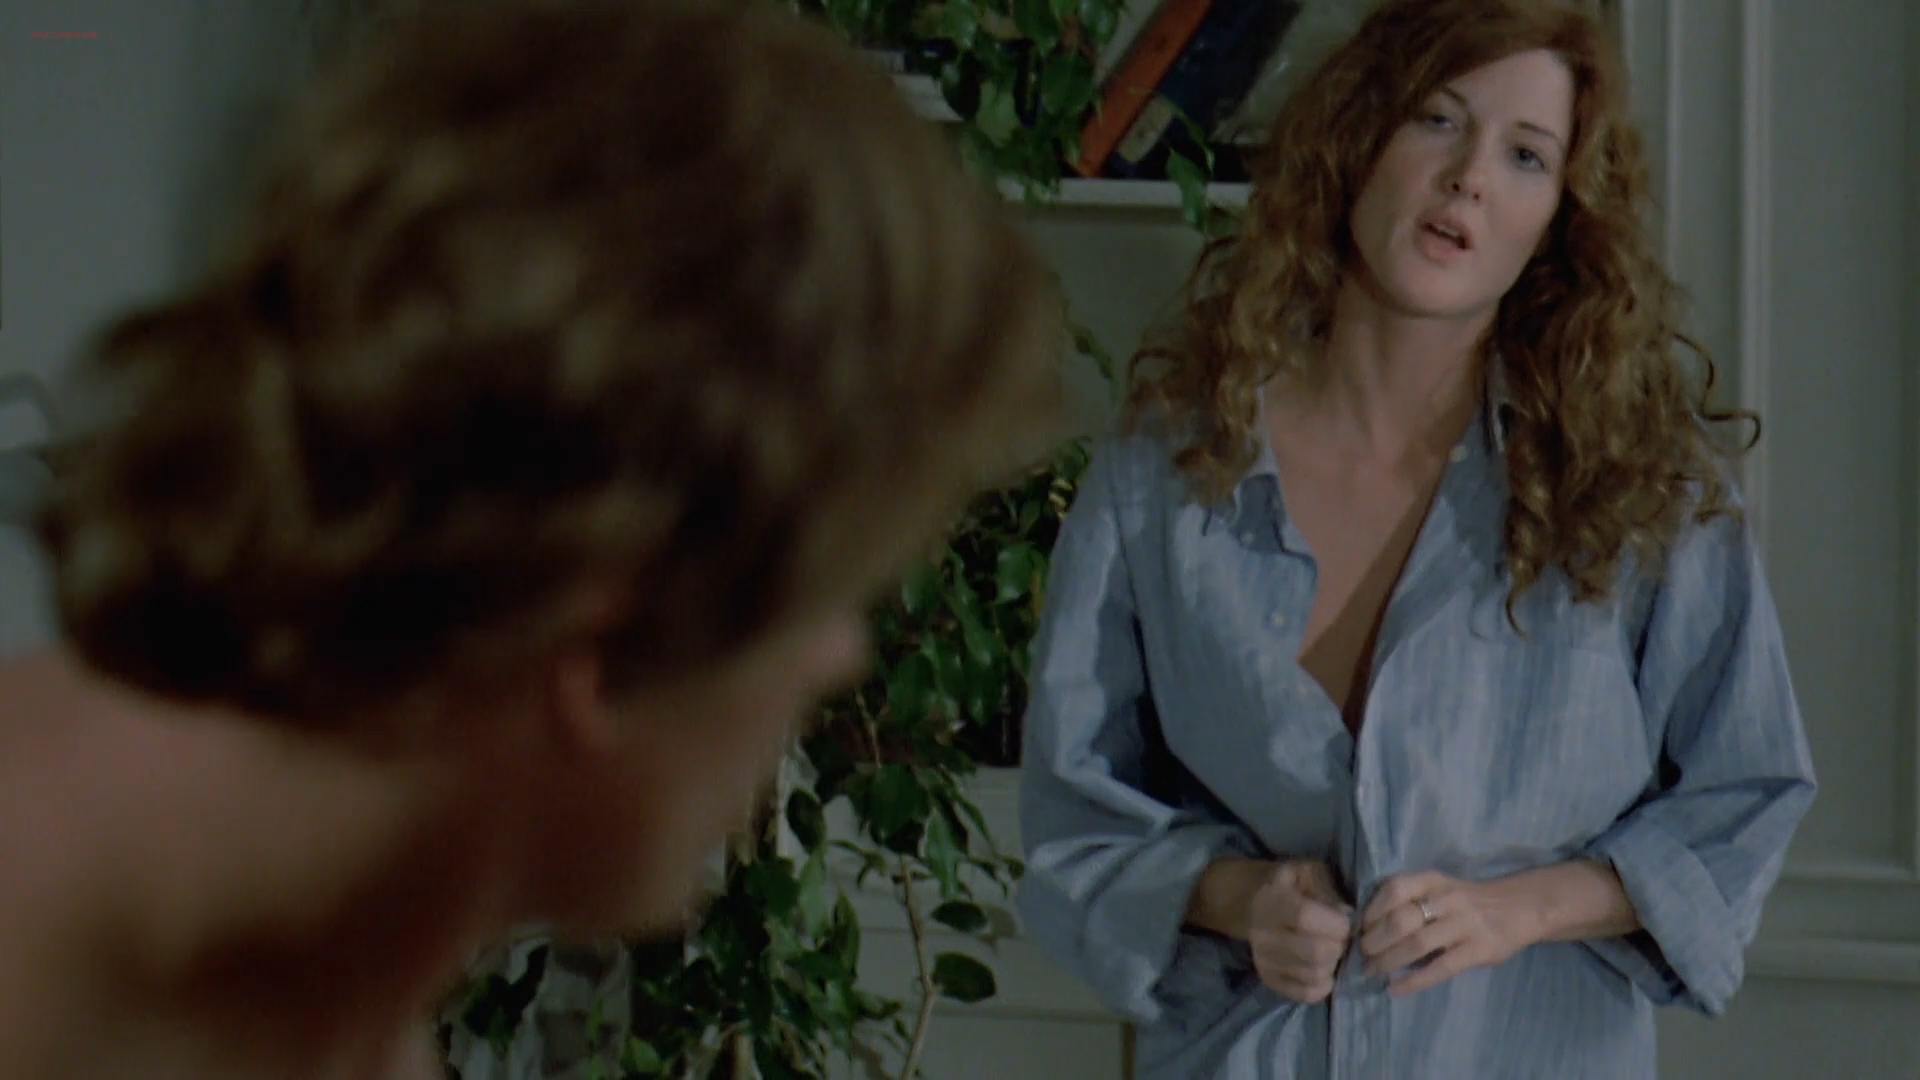 Greta Blackburn nude butt and topless Annette O'Toole not nude hot - 48 Hrs (1982) hd1080p (12)